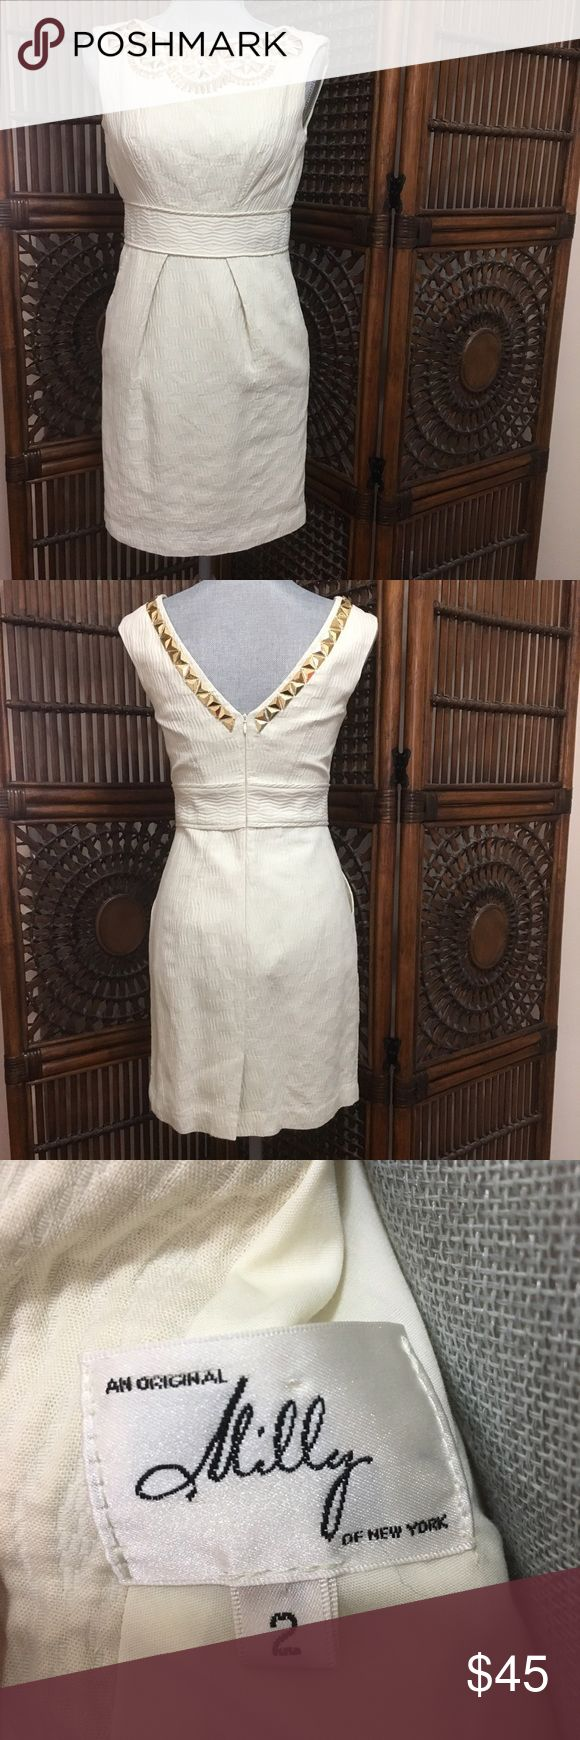 """Milly cream cocktail dress with beading Milly cream cocktail dress with gold and white beading. Textured cotton body in great condition. Hidden back zipper. Beads are gold and white plastic and do show signs of wear, including some scratches. No beads are missing from what I can tell, but some are loose (see pics for wear). Price is reflective of wear. Approx measurements laying flat: length - 34.5"""", chest - 15"""", waist - 13.5"""" Milly Dresses"""